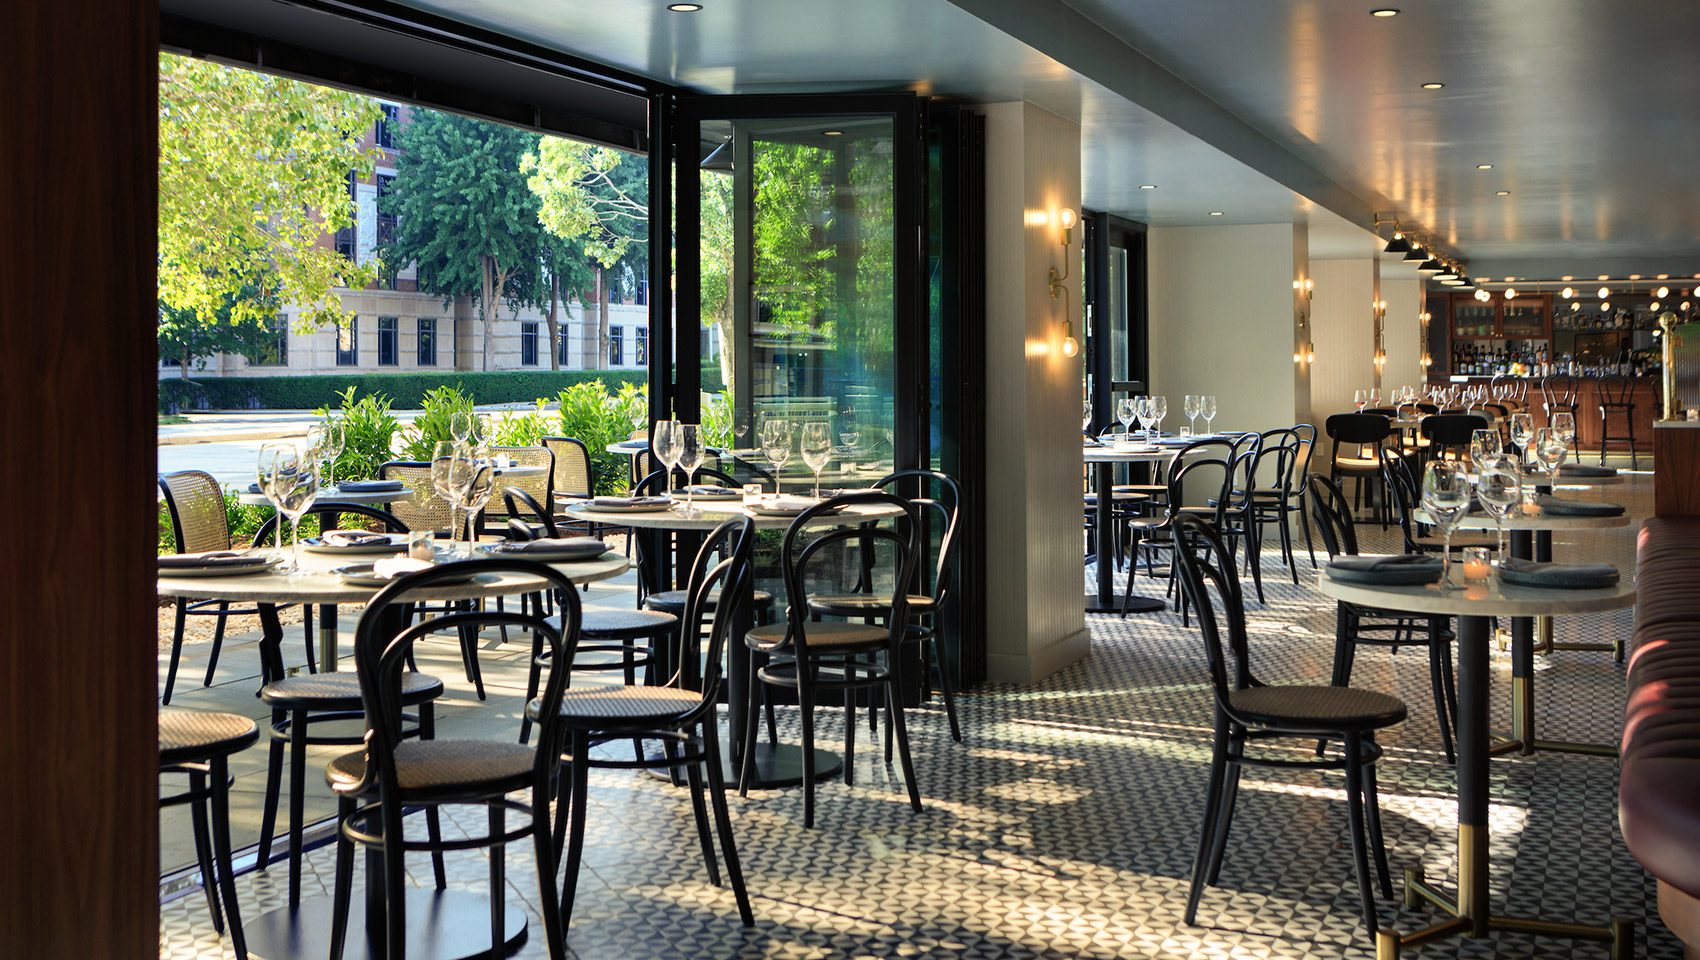 The open air dining room at Le Sel on 16th Street NW